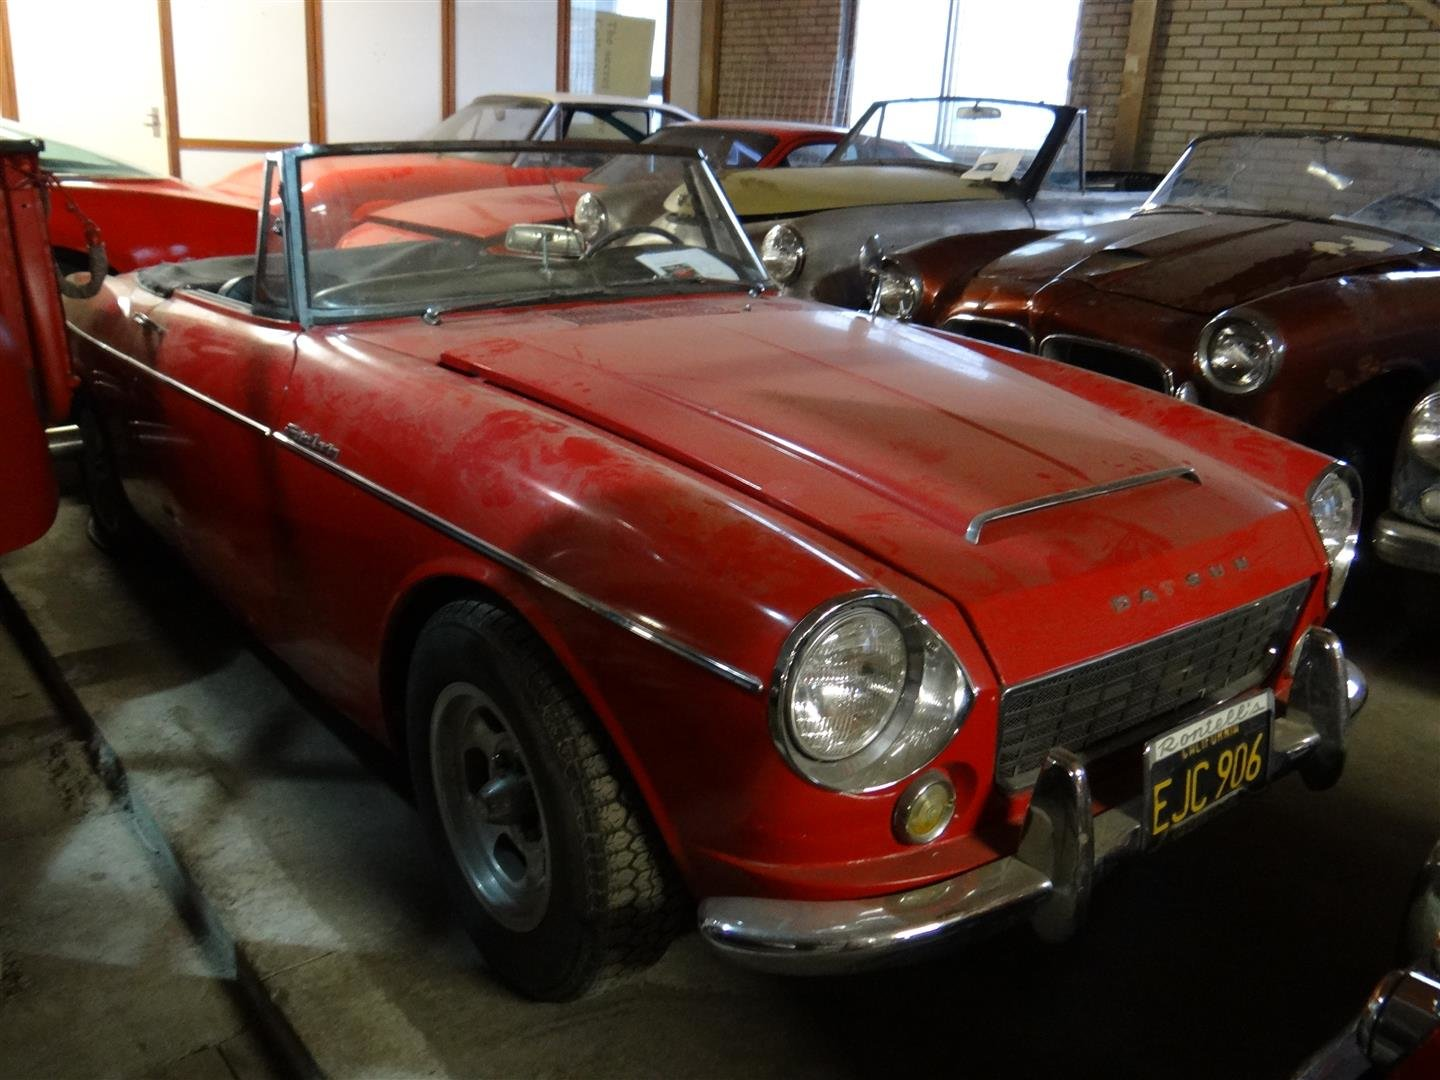 1965 Datsun 1500 Fairlady '65 For Sale (picture 6 of 6)